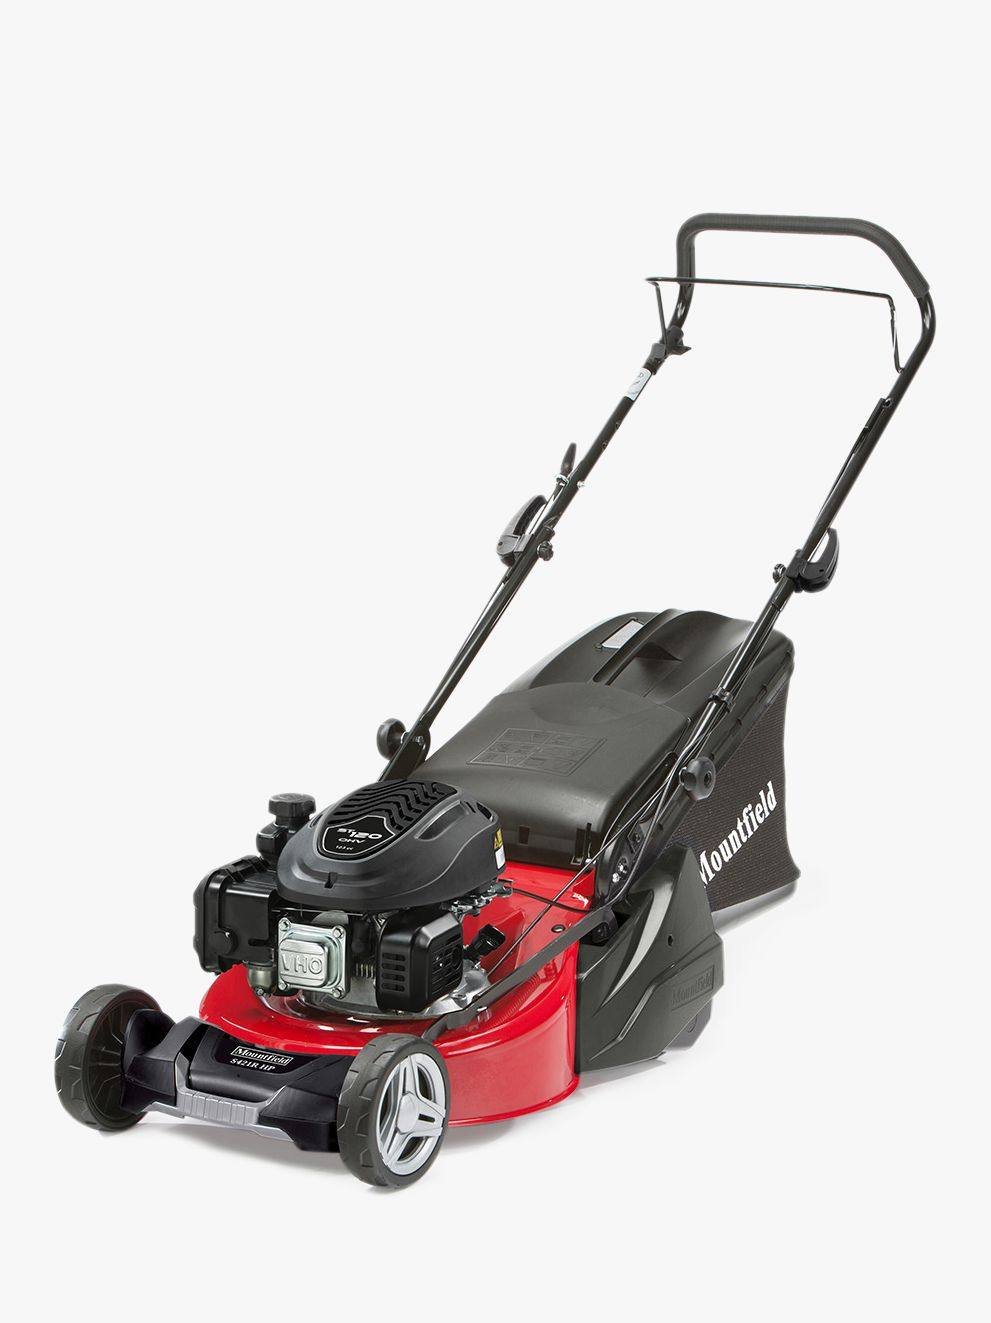 Mountfield Mountfield S421R Hand-Propelled Petrol Lawnmower, Red